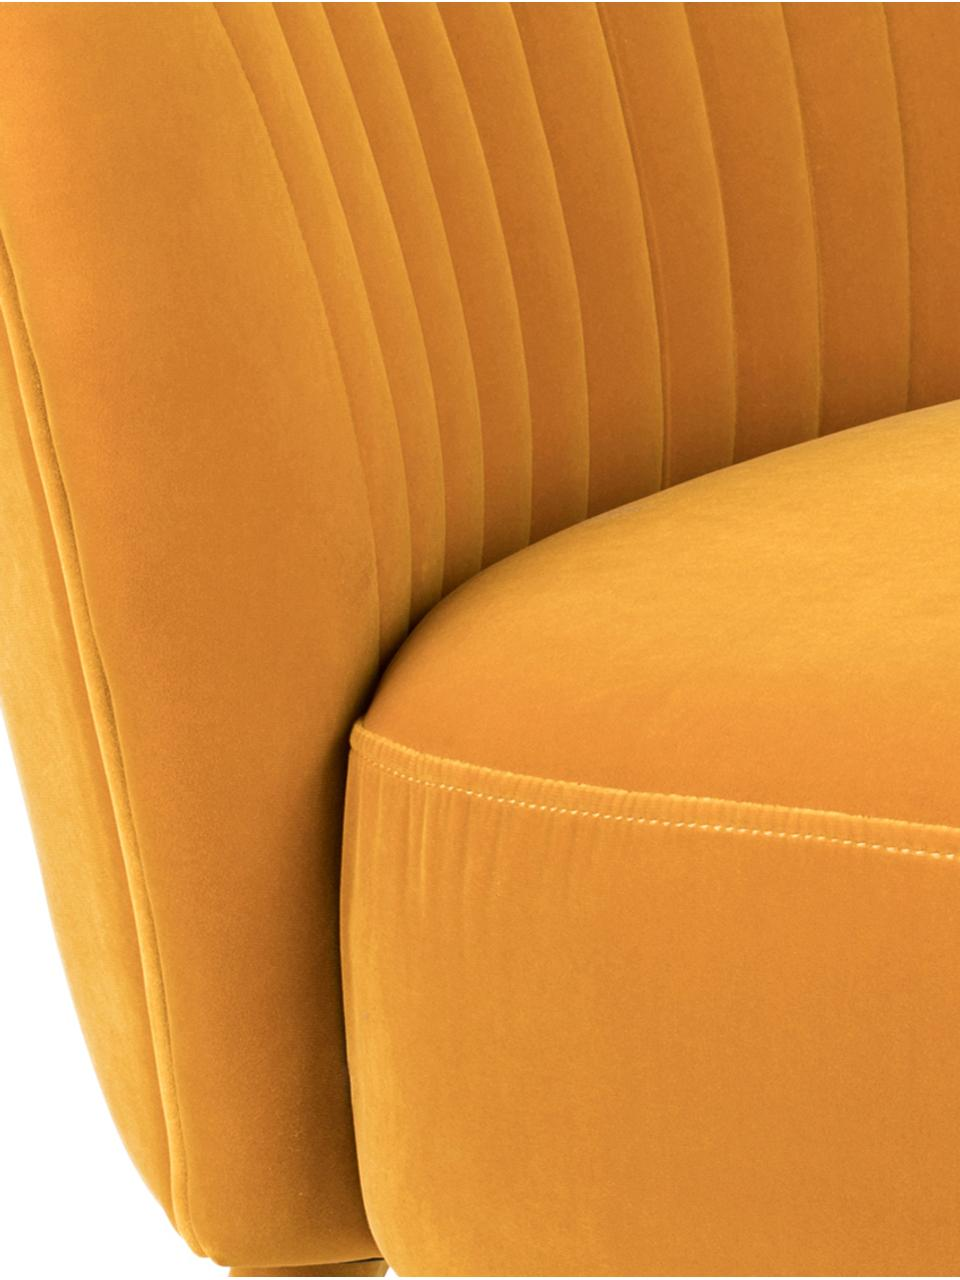 Fauteuil cocktail en velours jaune Well Dressed, Velours ocre